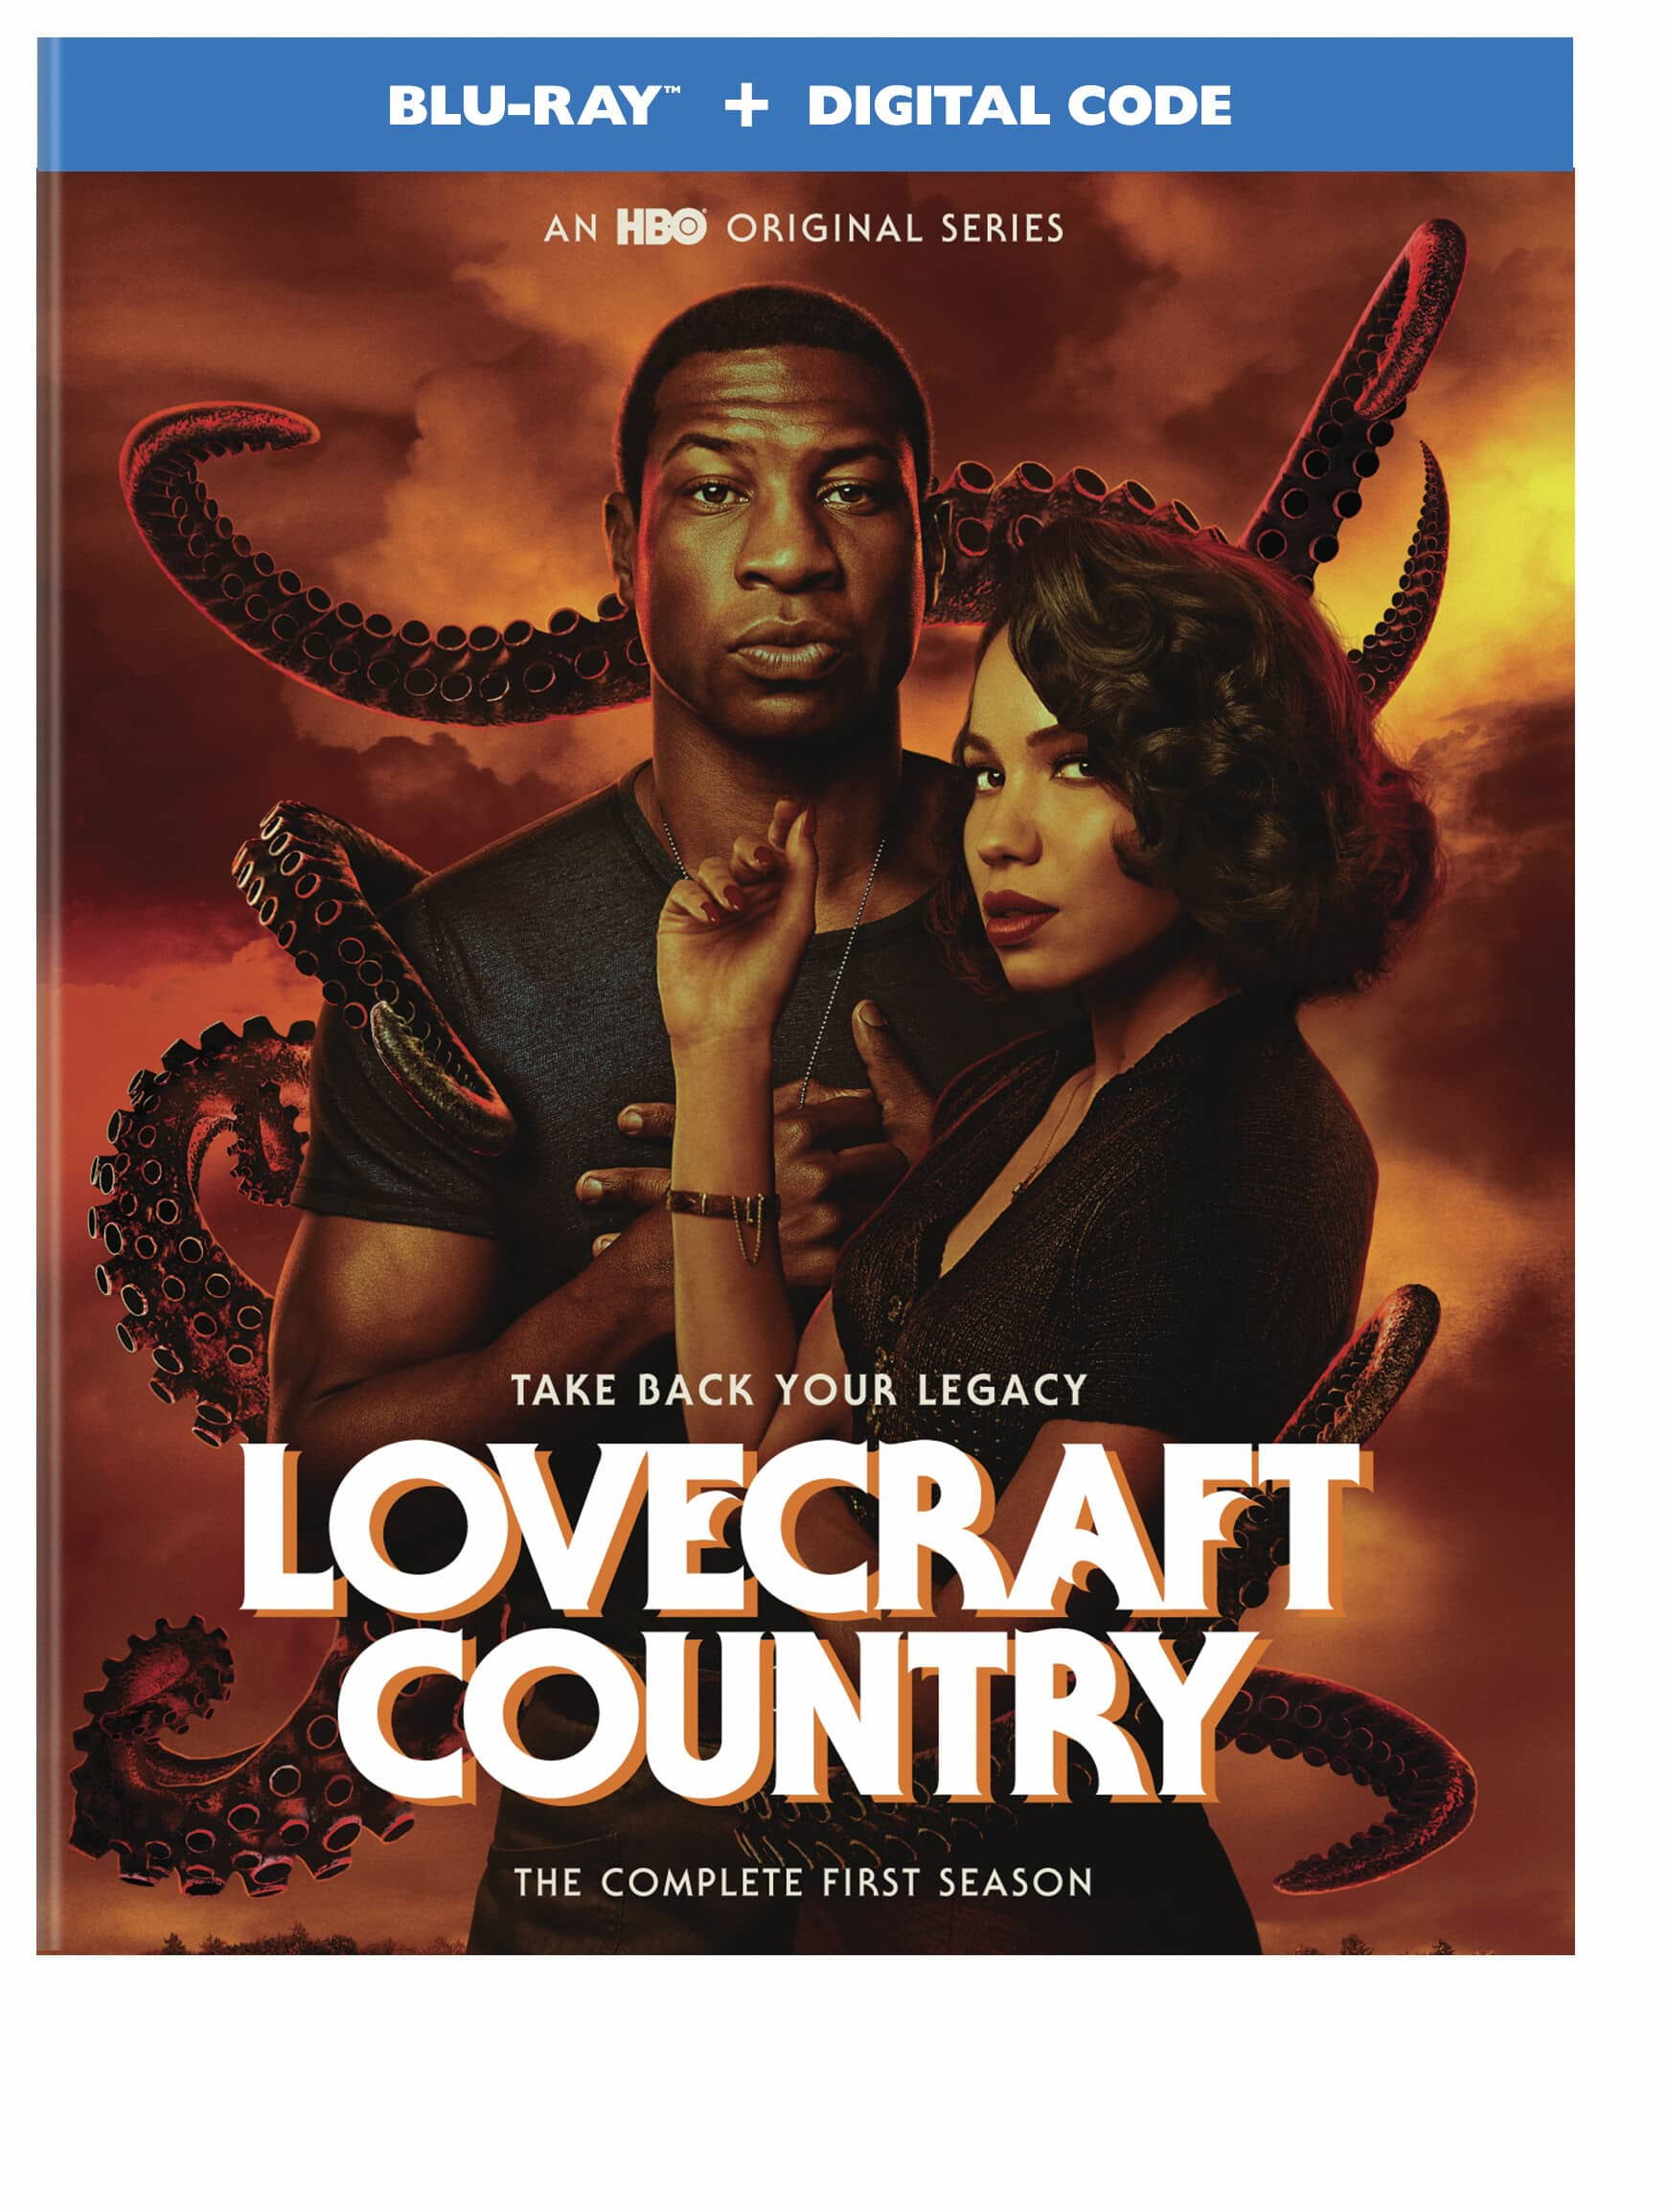 Lovecraft Country S1 BD